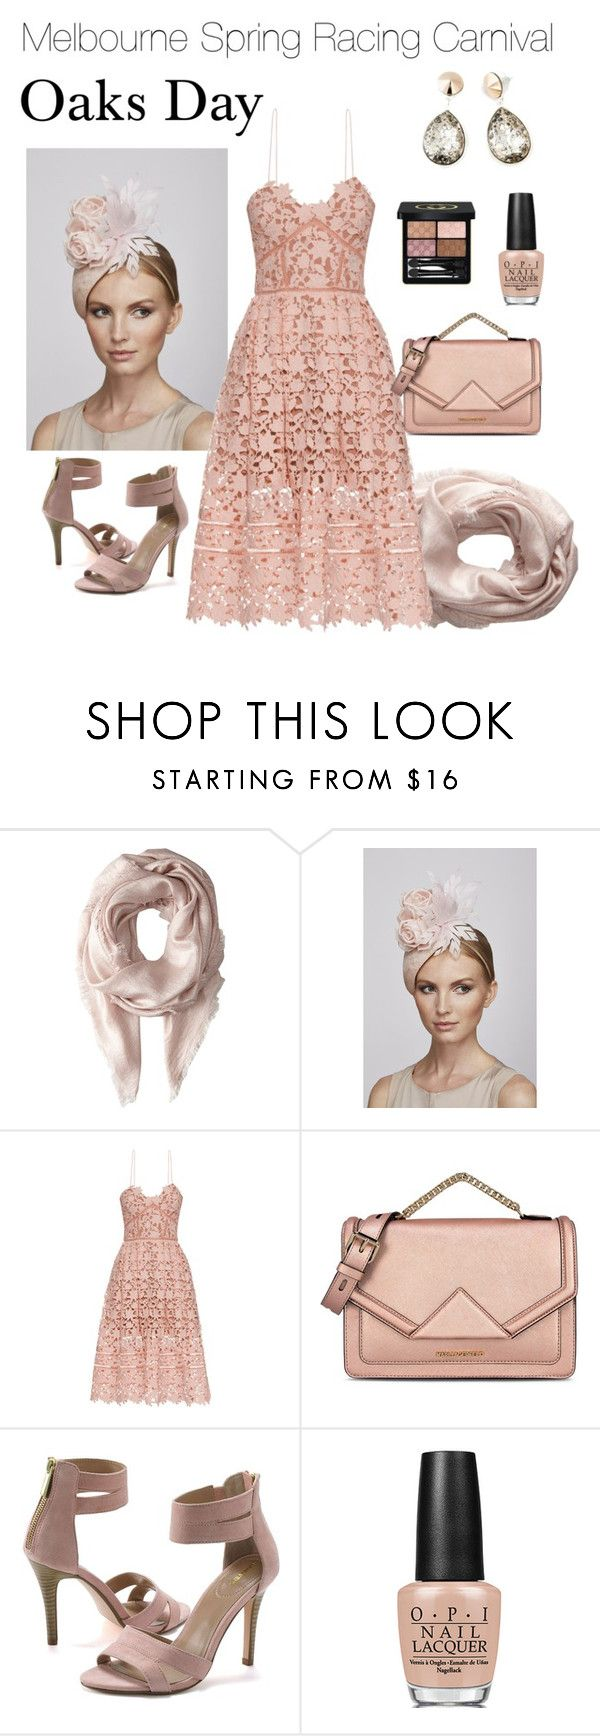 """Melbourne Spring Racing Fashion-Oaks Day"" by irockjewellery on Polyvore featuring Echo Design, Juliette Botterill Millinery, self-portrait, Karl Lagerfeld, Lands' End, OPI, Gucci, StyleInspiration, StyleTips and fashionset"